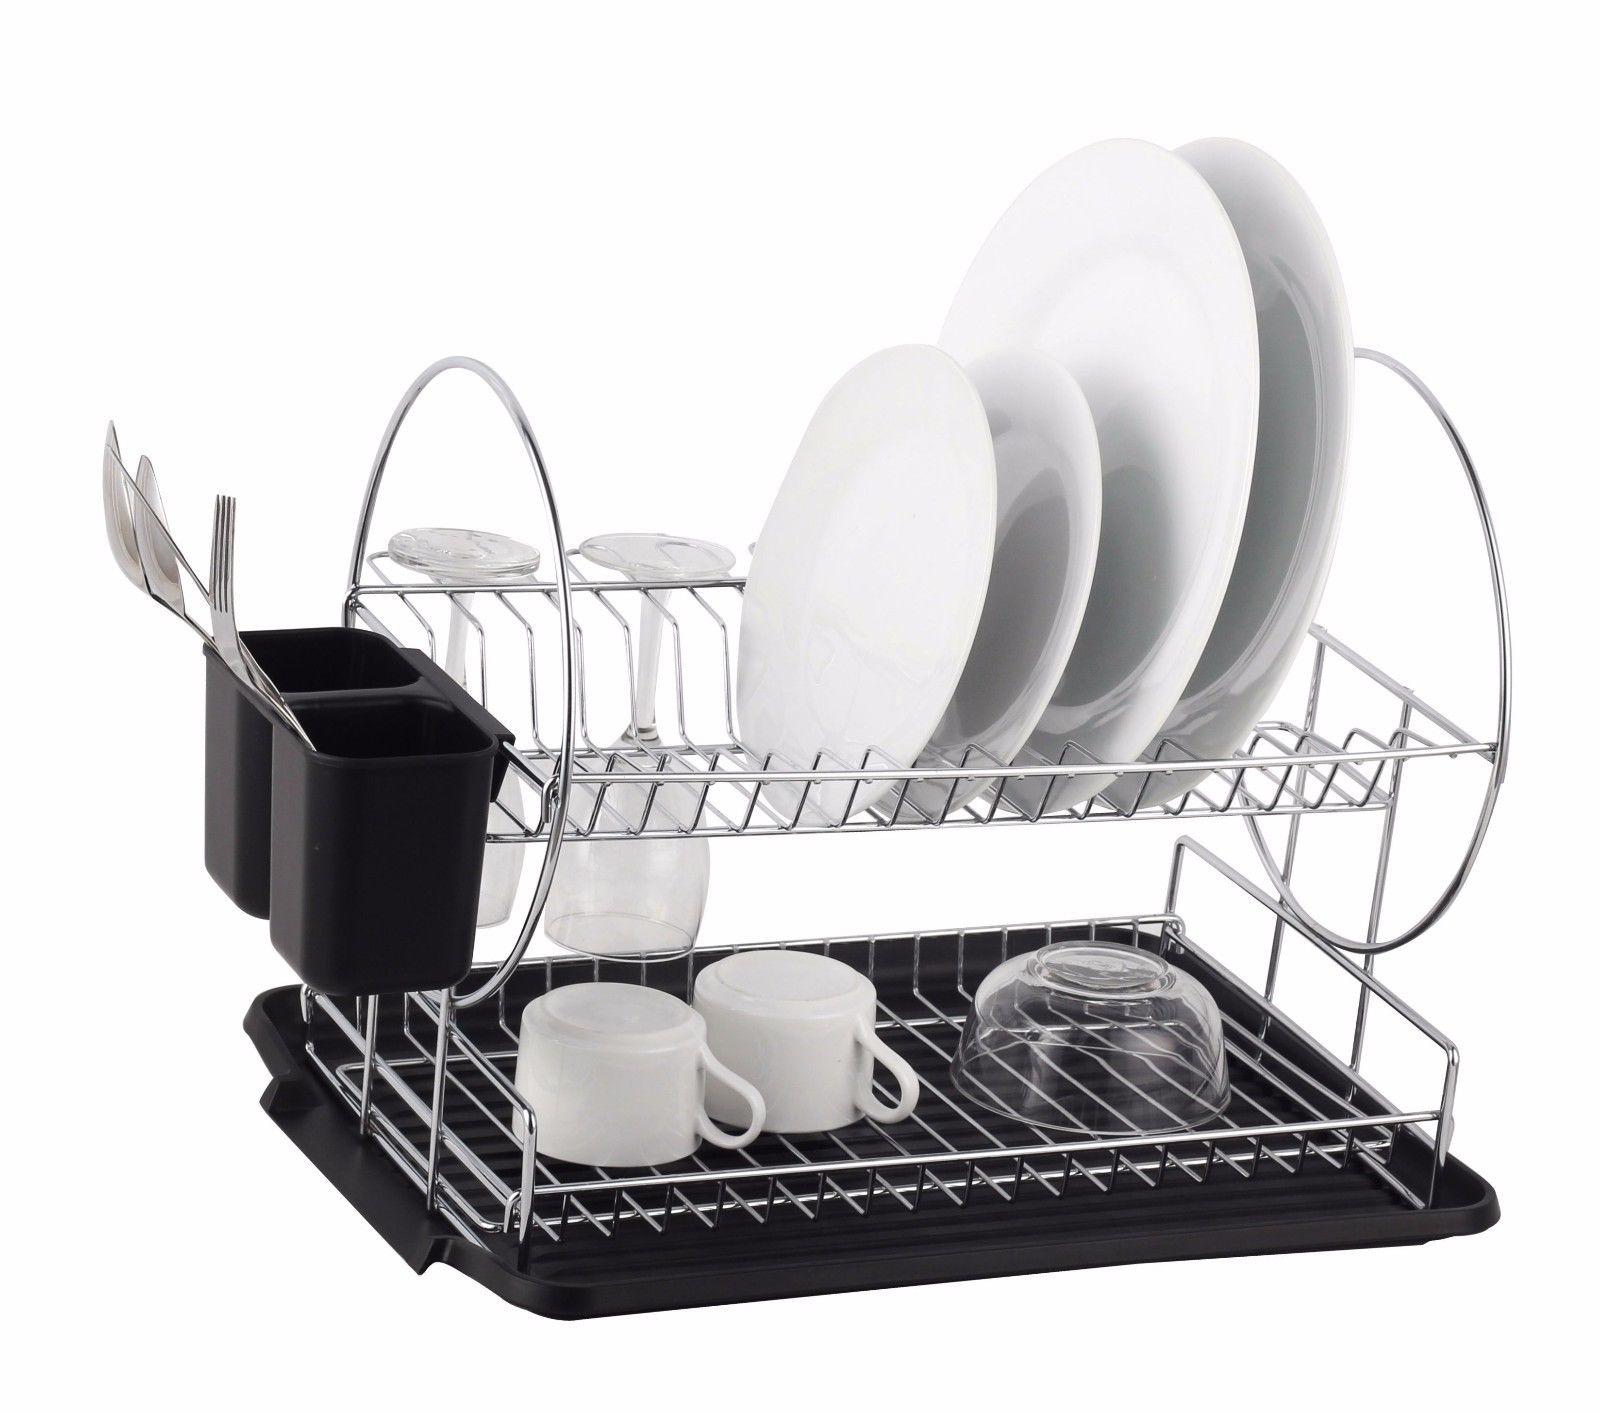 fea987b4d8e1 Deluxe Chrome-plated Steel 2-Tier Dish Rack with Drainboard / Cutlery Cup  (BlackII)